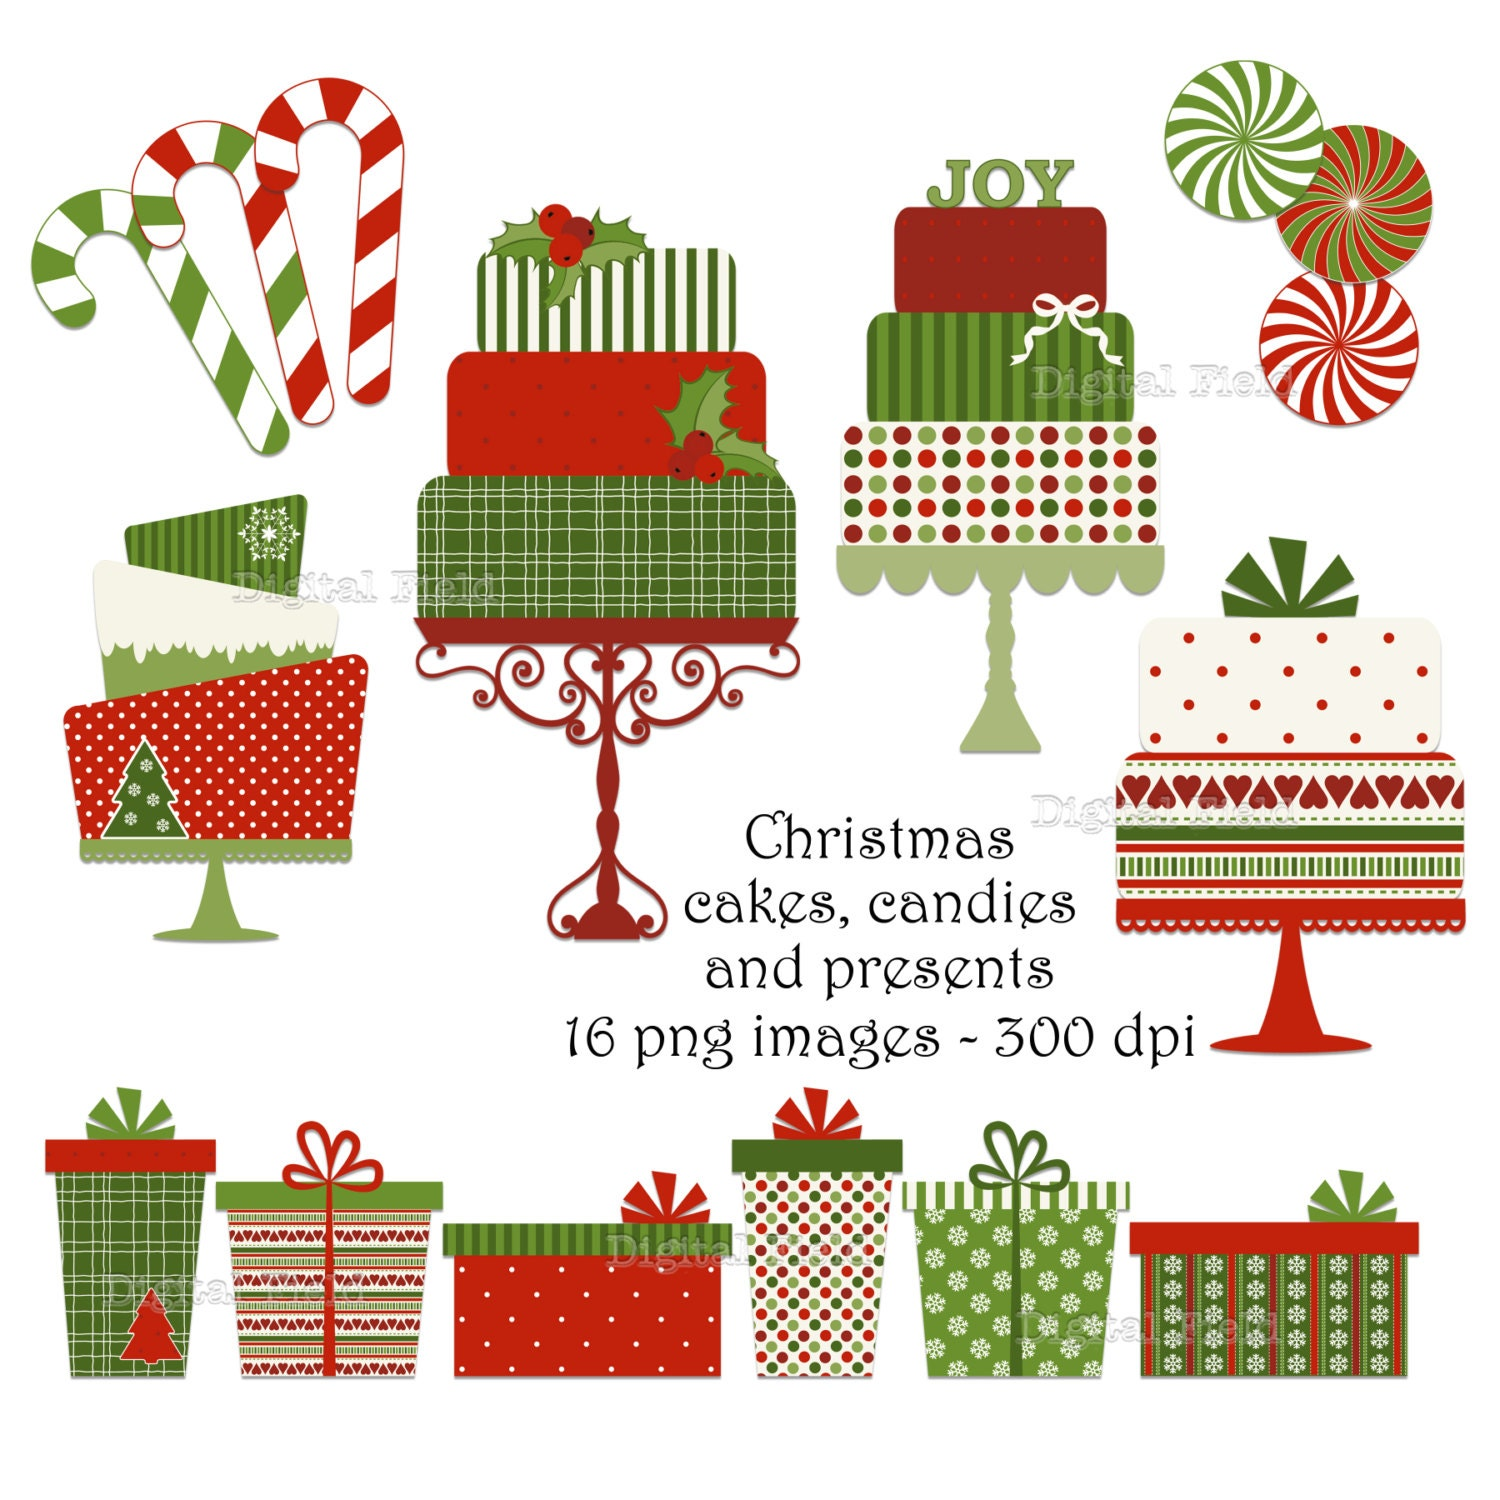 Christmas cake, candy and present clip art set - red green patterned holiday printable digital clipart - instant download - digitalfield